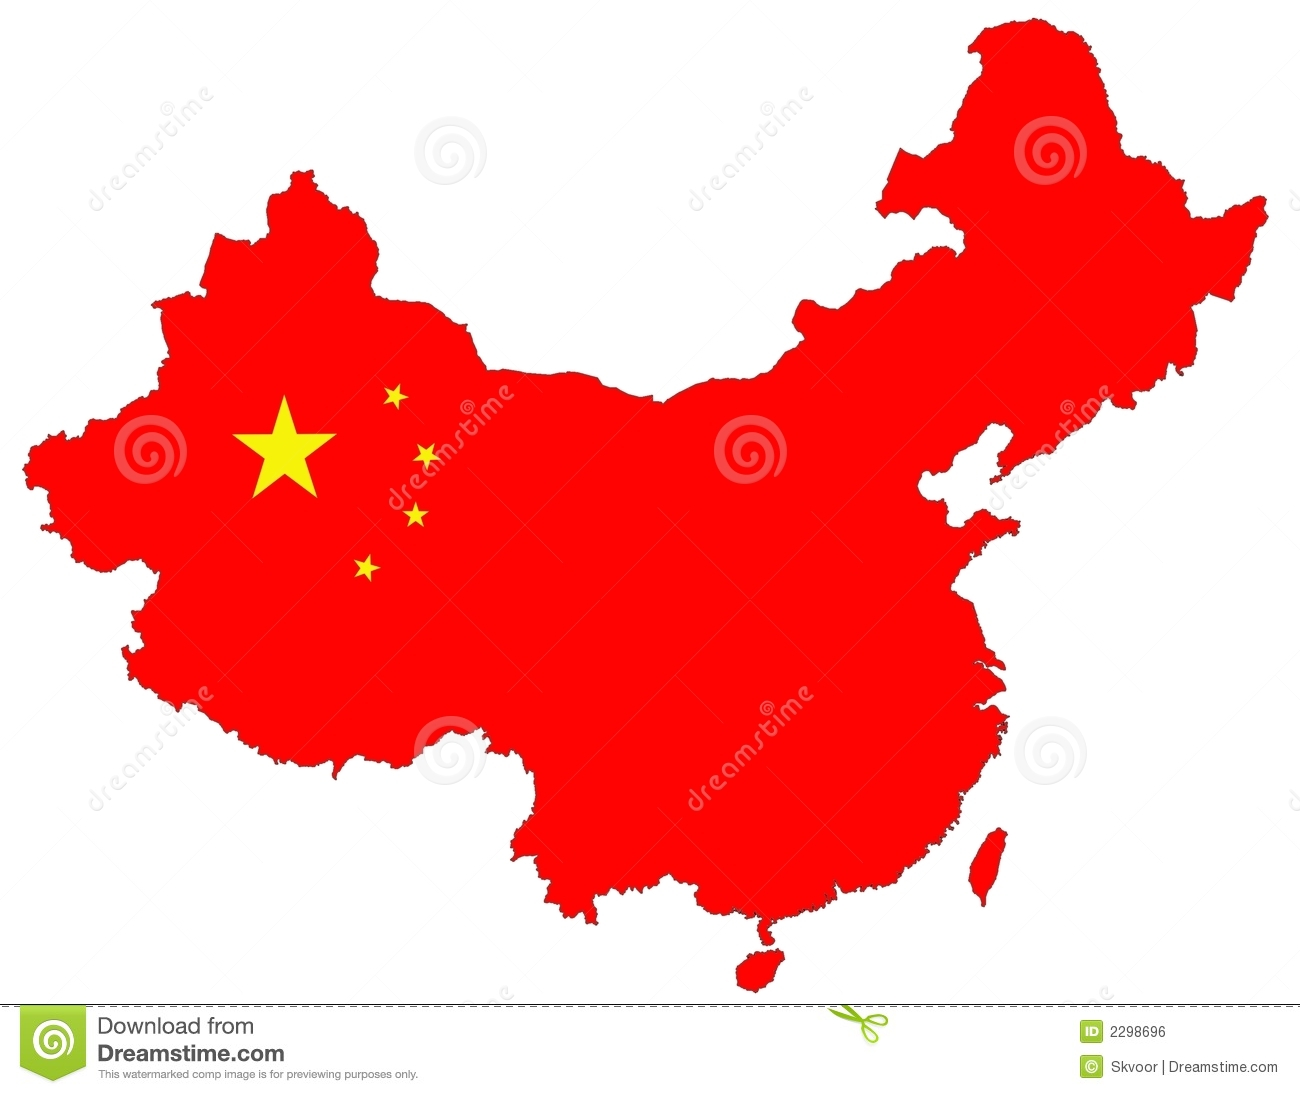 Bazaruto Bazaruto Mz as well Royalty Free Stock Image Isolated Red Map China Image2298696 moreover Watch additionally Chinamapcities blogspot additionally Where To Go To Relax And Exercise In Taipei Taiwan. on taiwan map in chinese